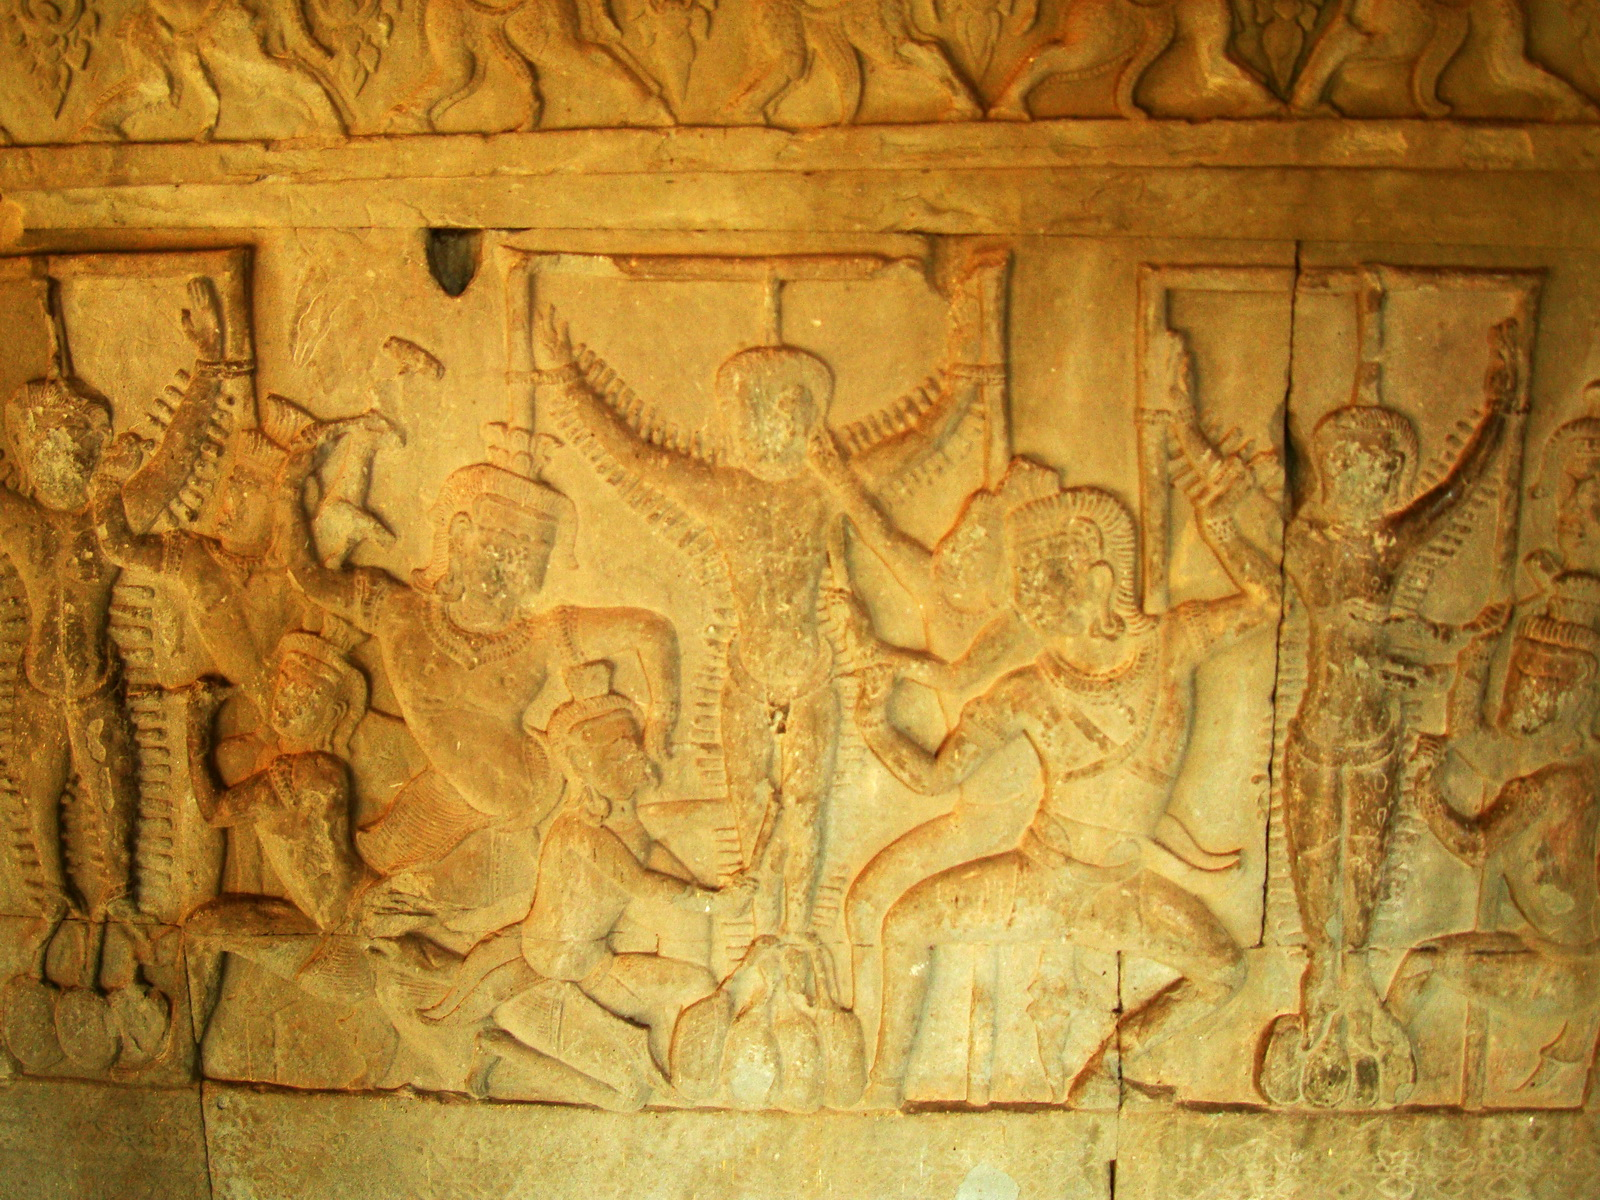 Angkor Wat Bas relief S Gallery E Wing Heavens and Hells 80